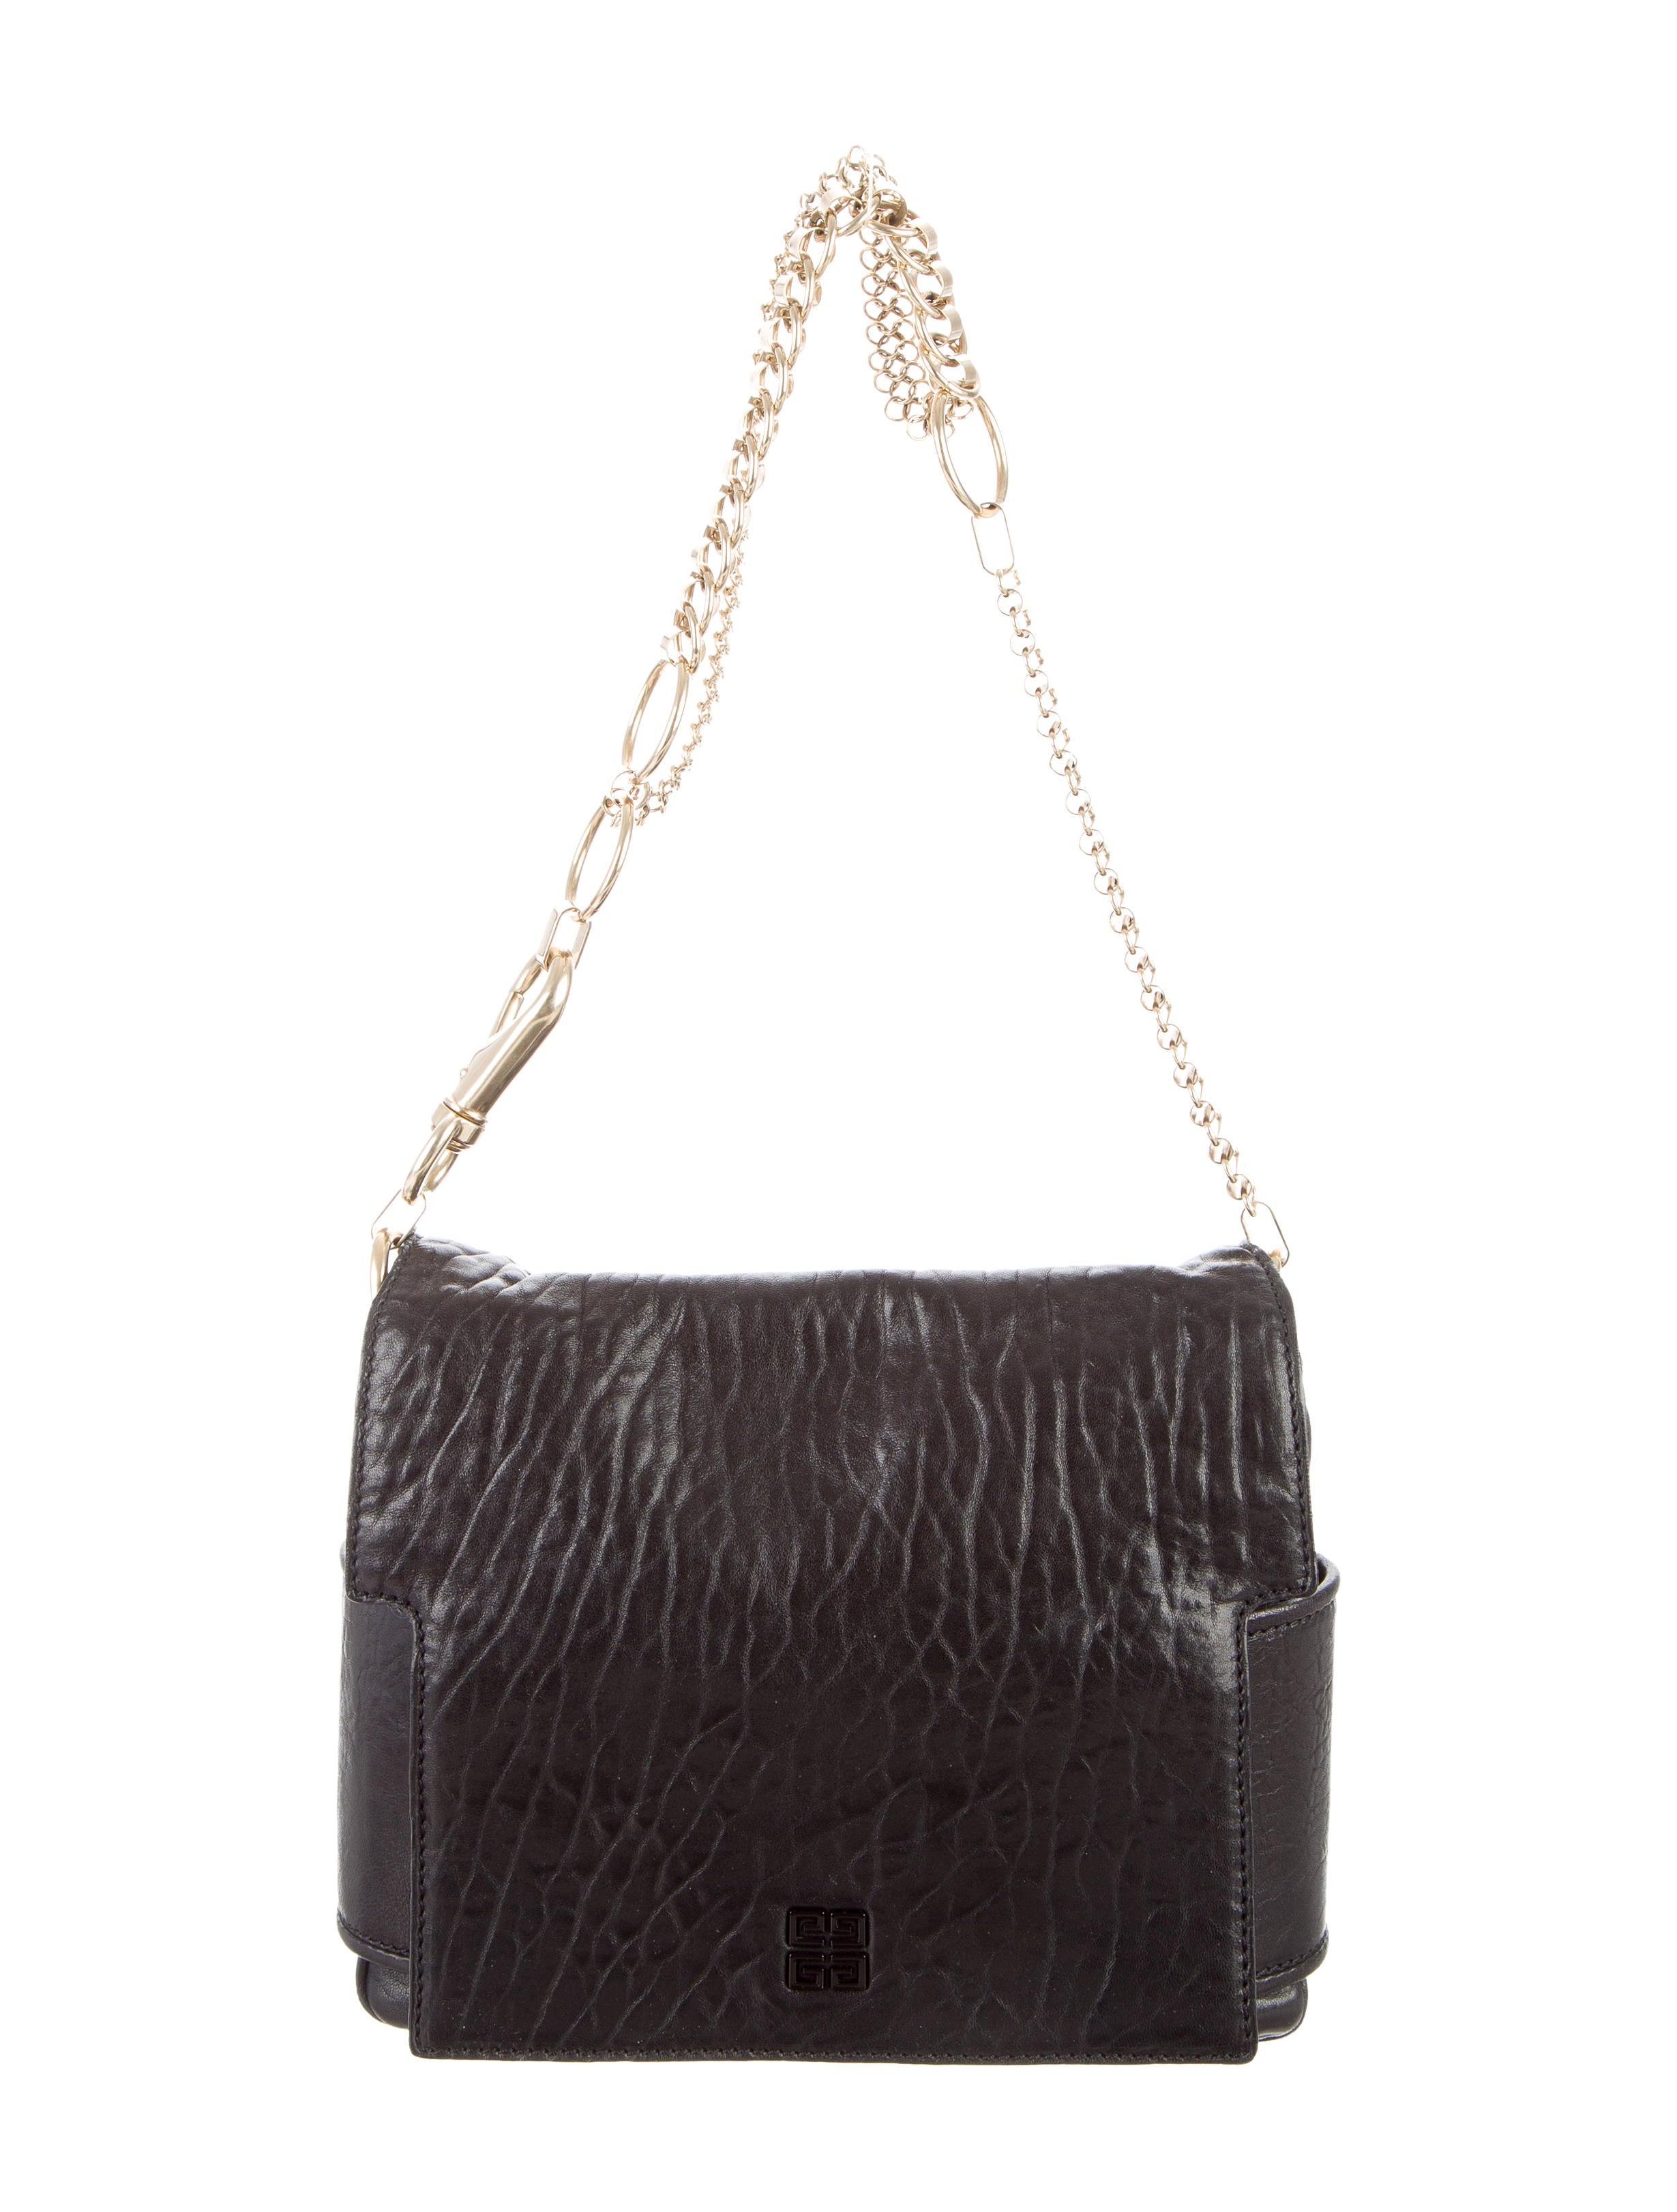 1bf6afccce Givenchy Textured Leather Melancholia Bag - Handbags - GIV37602 ...